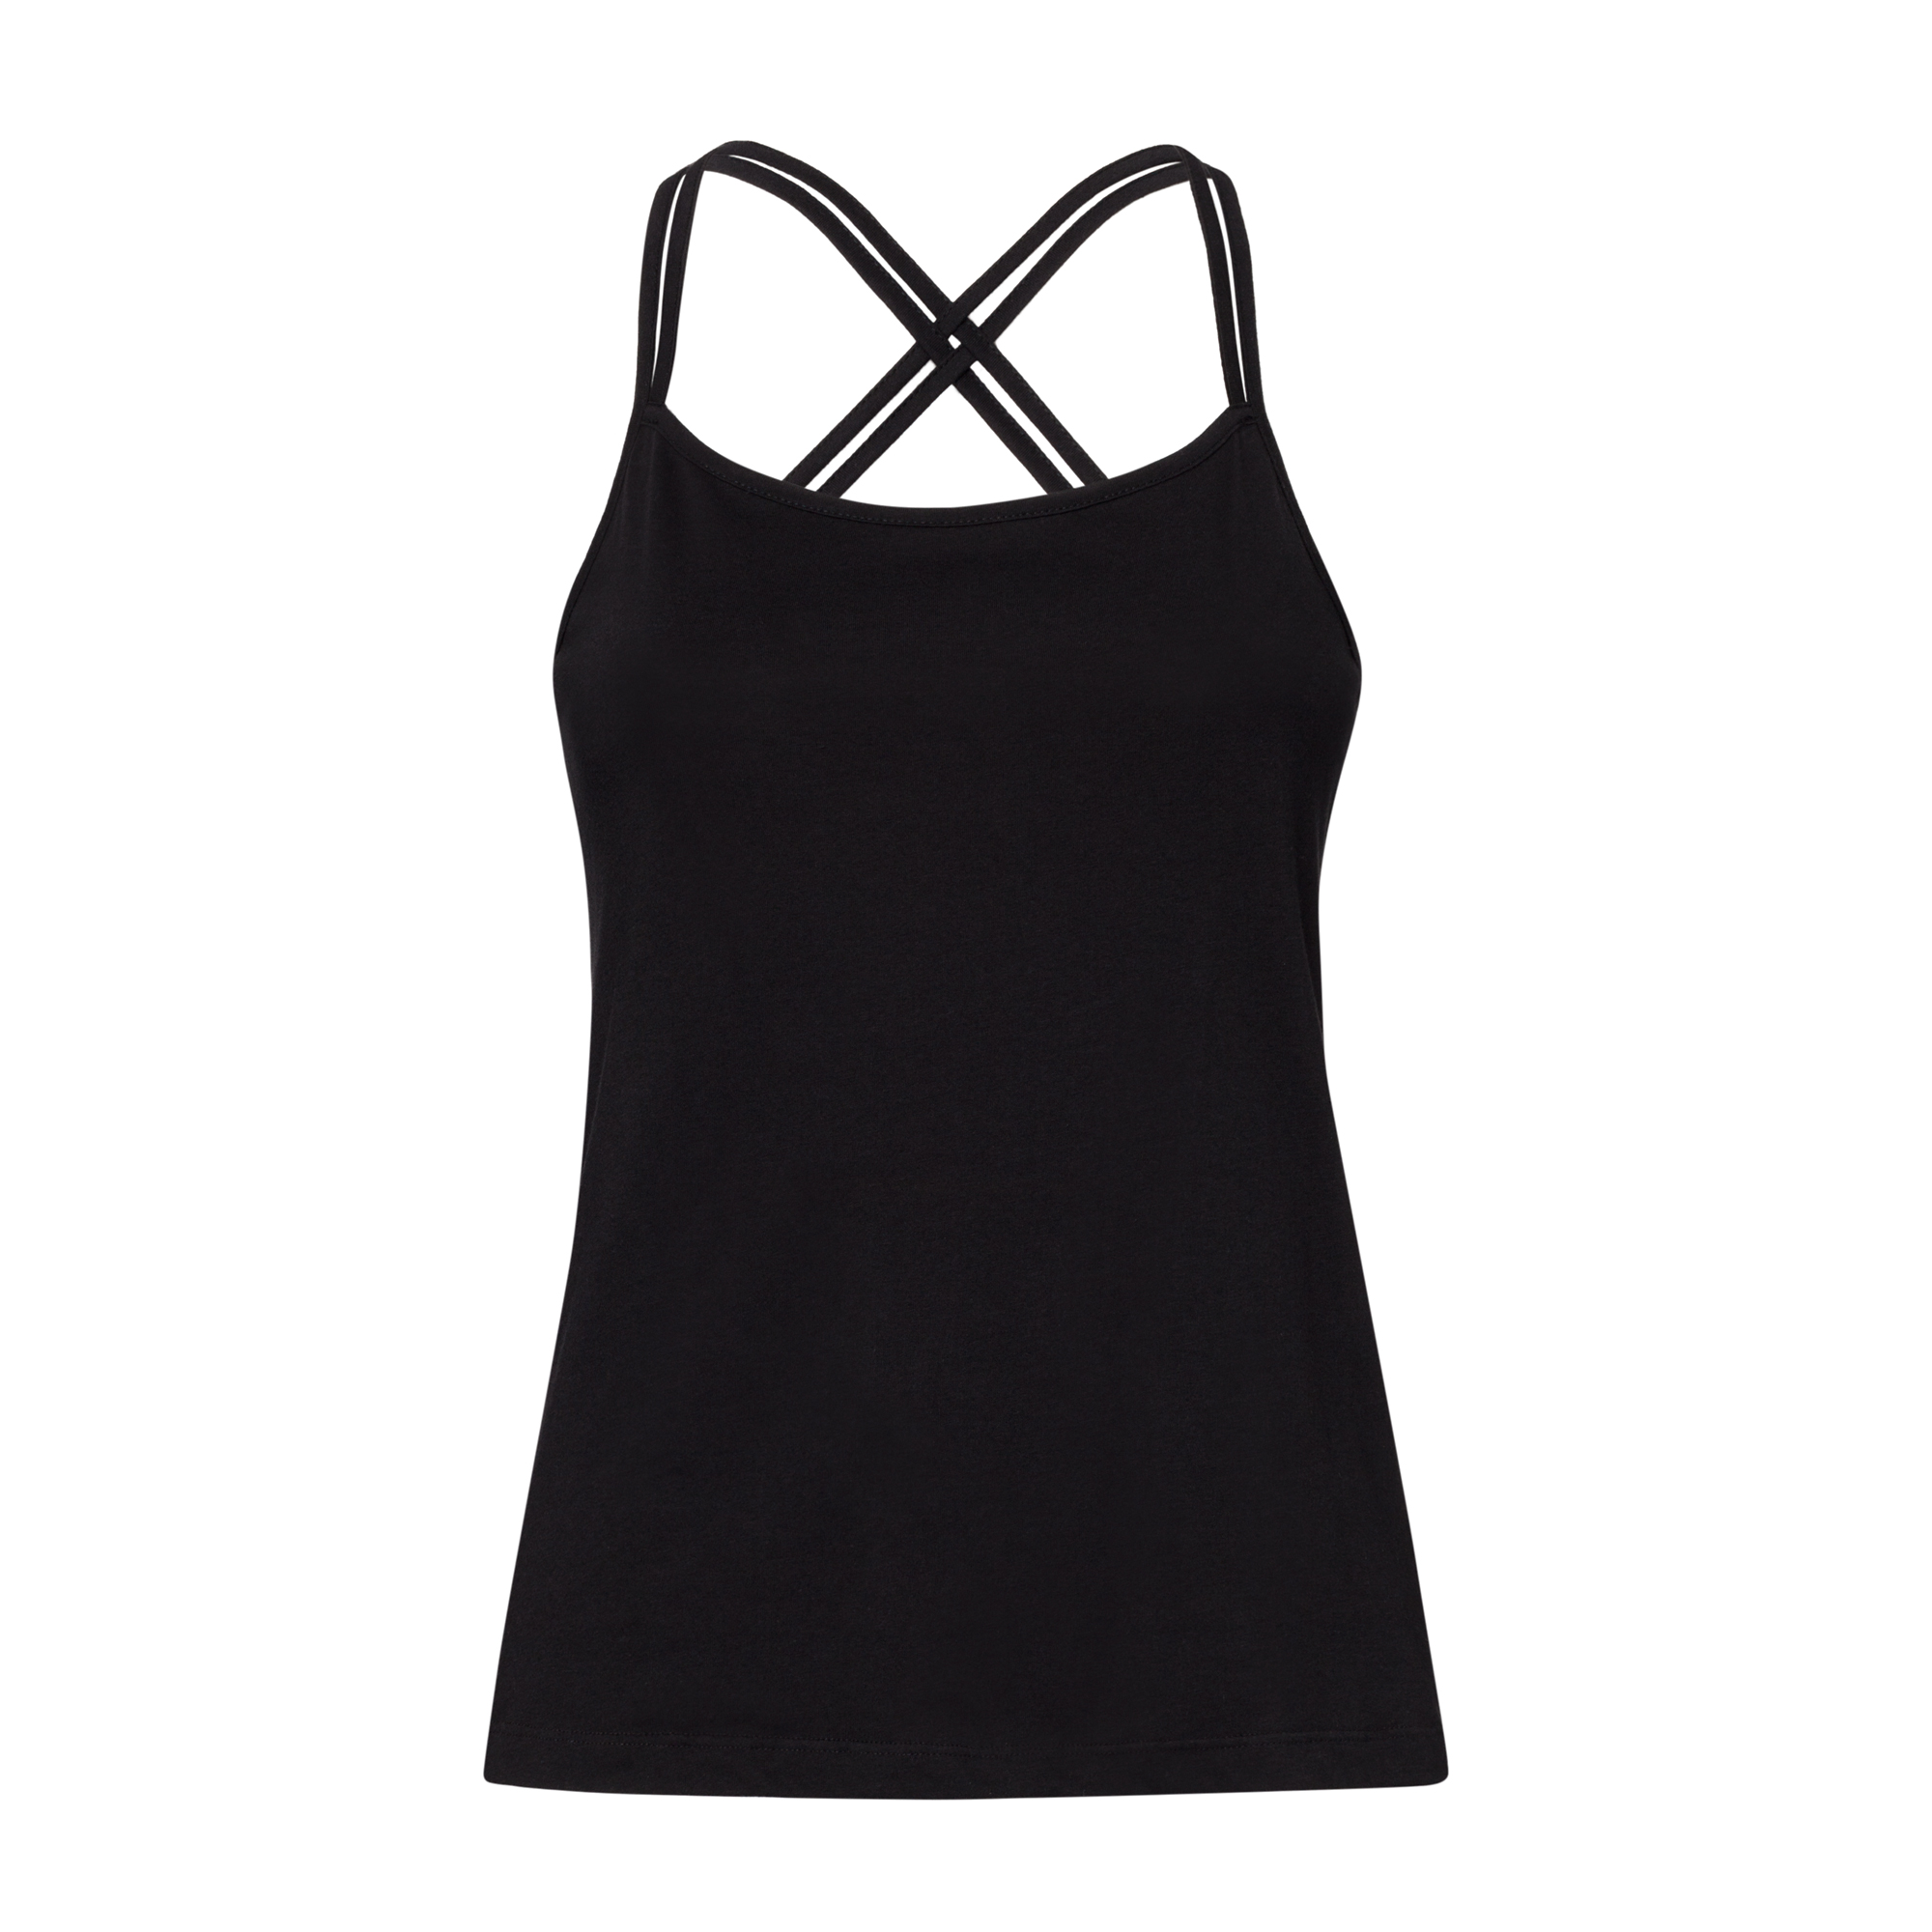 TT33 Spaghetti Top Woman Black Organic & Fair